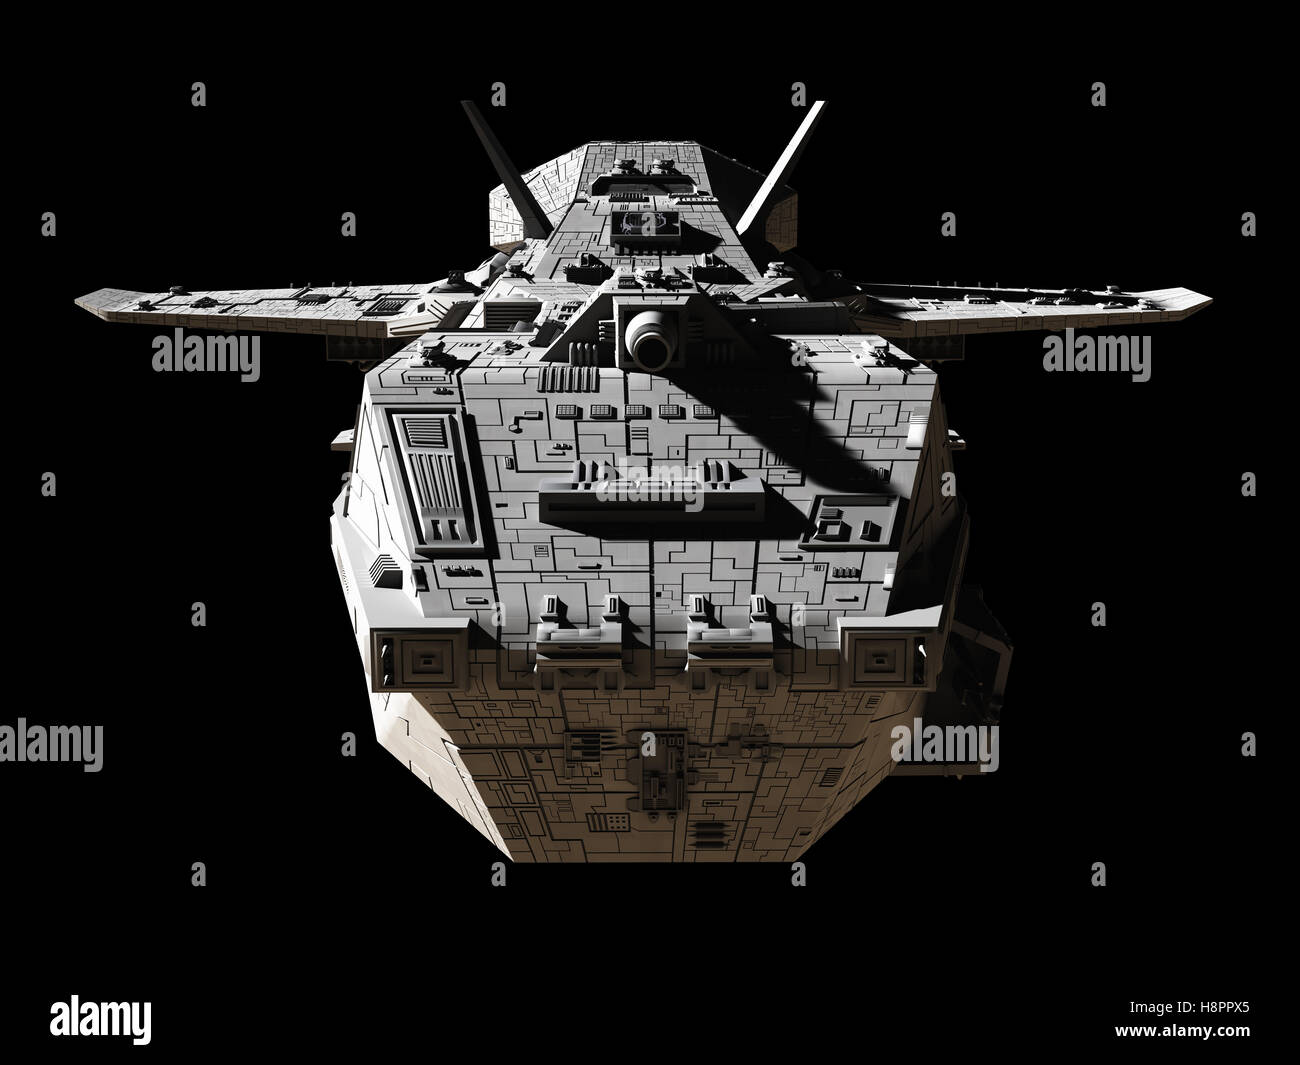 Science Fiction Interplanetary Spaceship - Front View - Stock Image